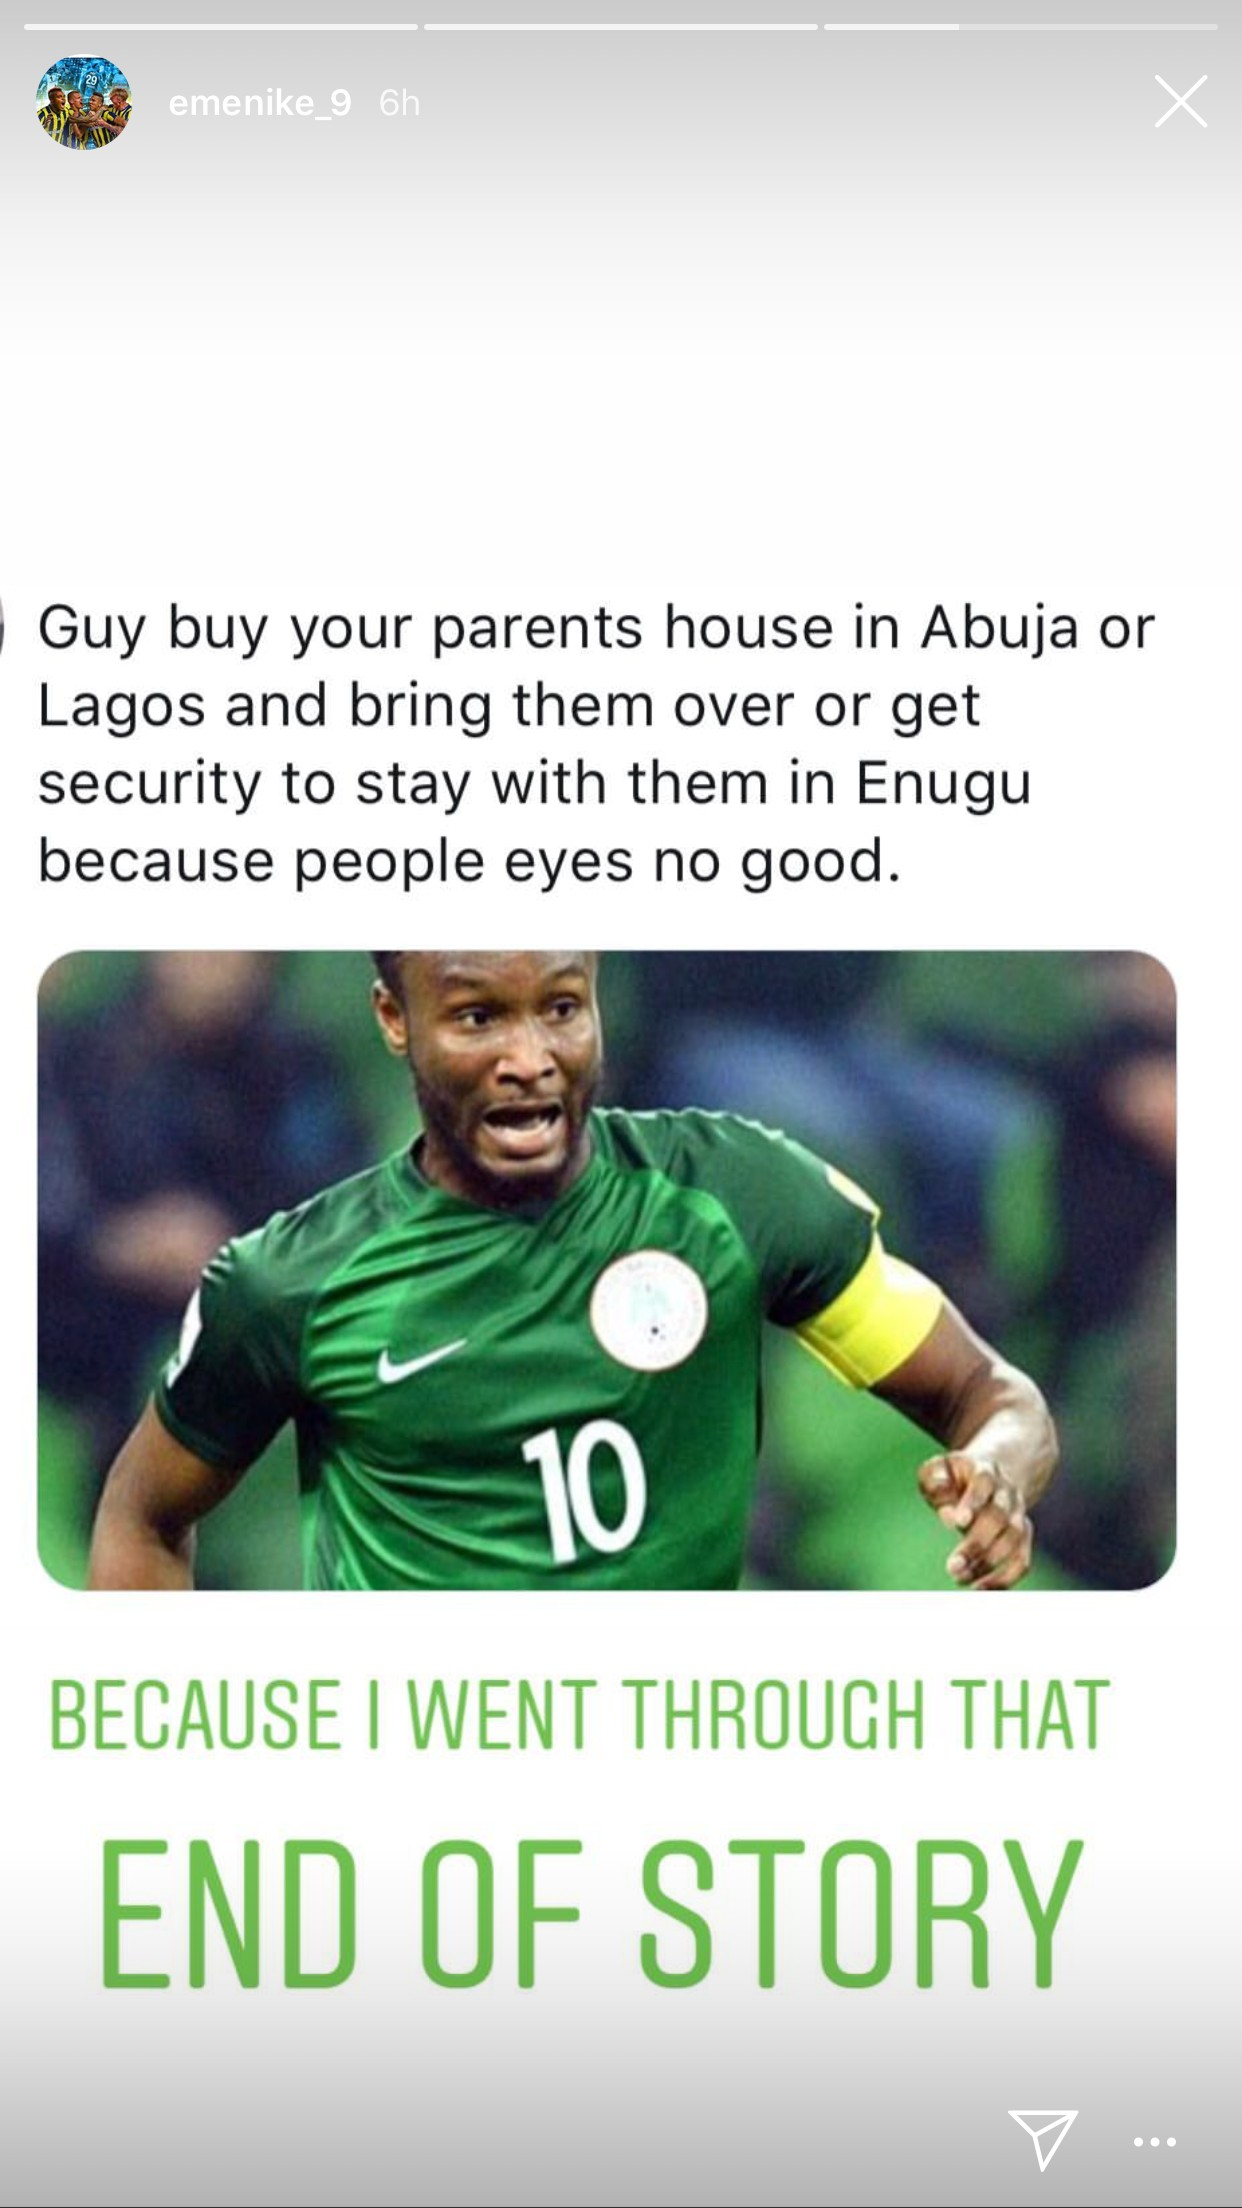 Emmanuel Emenike advices Mikel Obi to either get security to stay with his father or relocate him out of Enugu